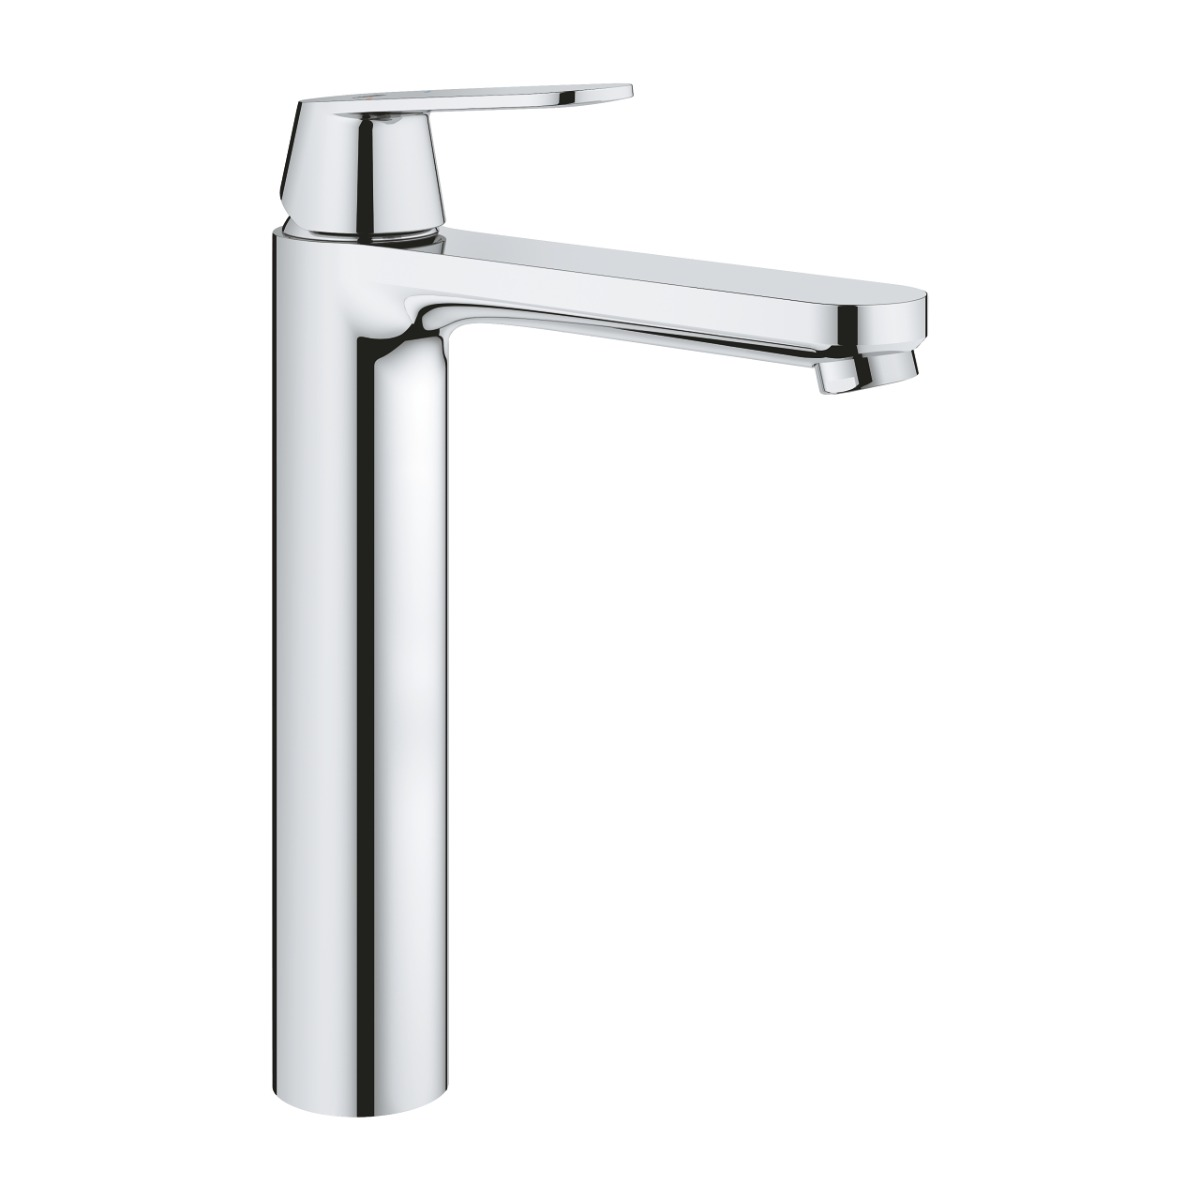 Baterie lavoar Grohe Eurosmart Cosmo, marimea XL, Crom, furtune flexibile-23921000 imagine